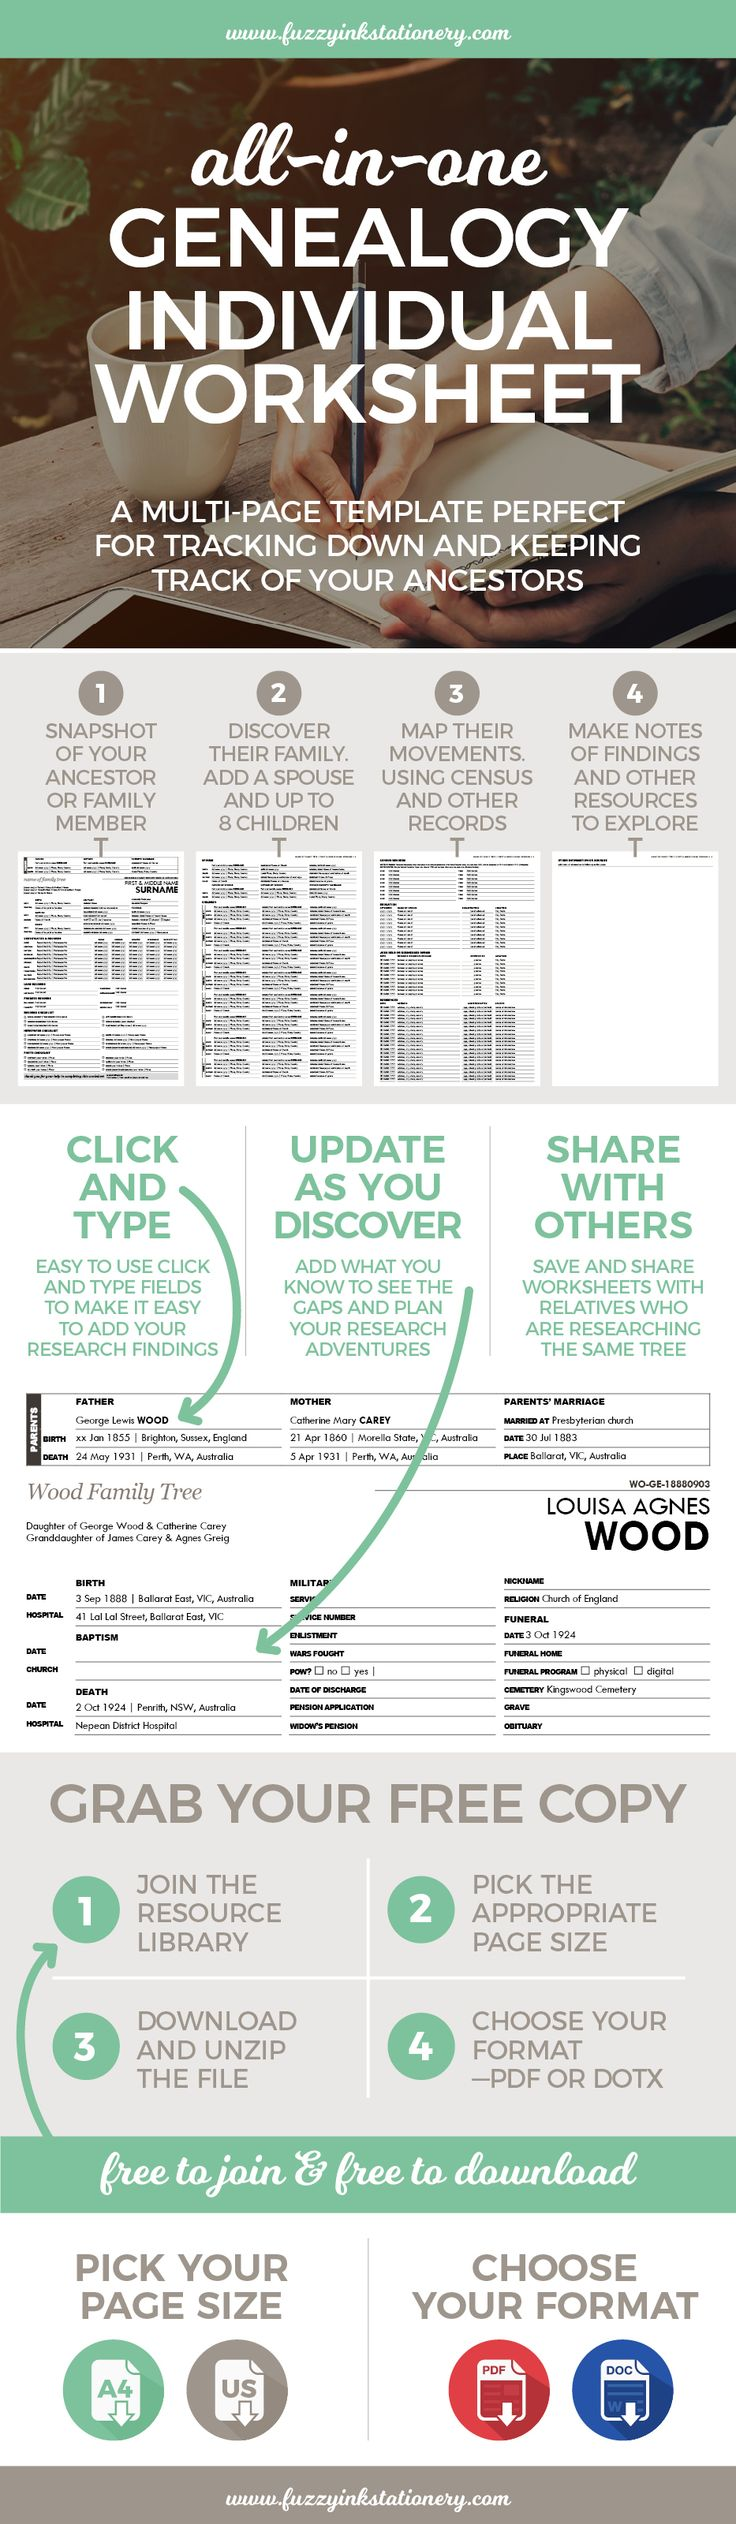 All-in-one genealogy worksheet pinterest